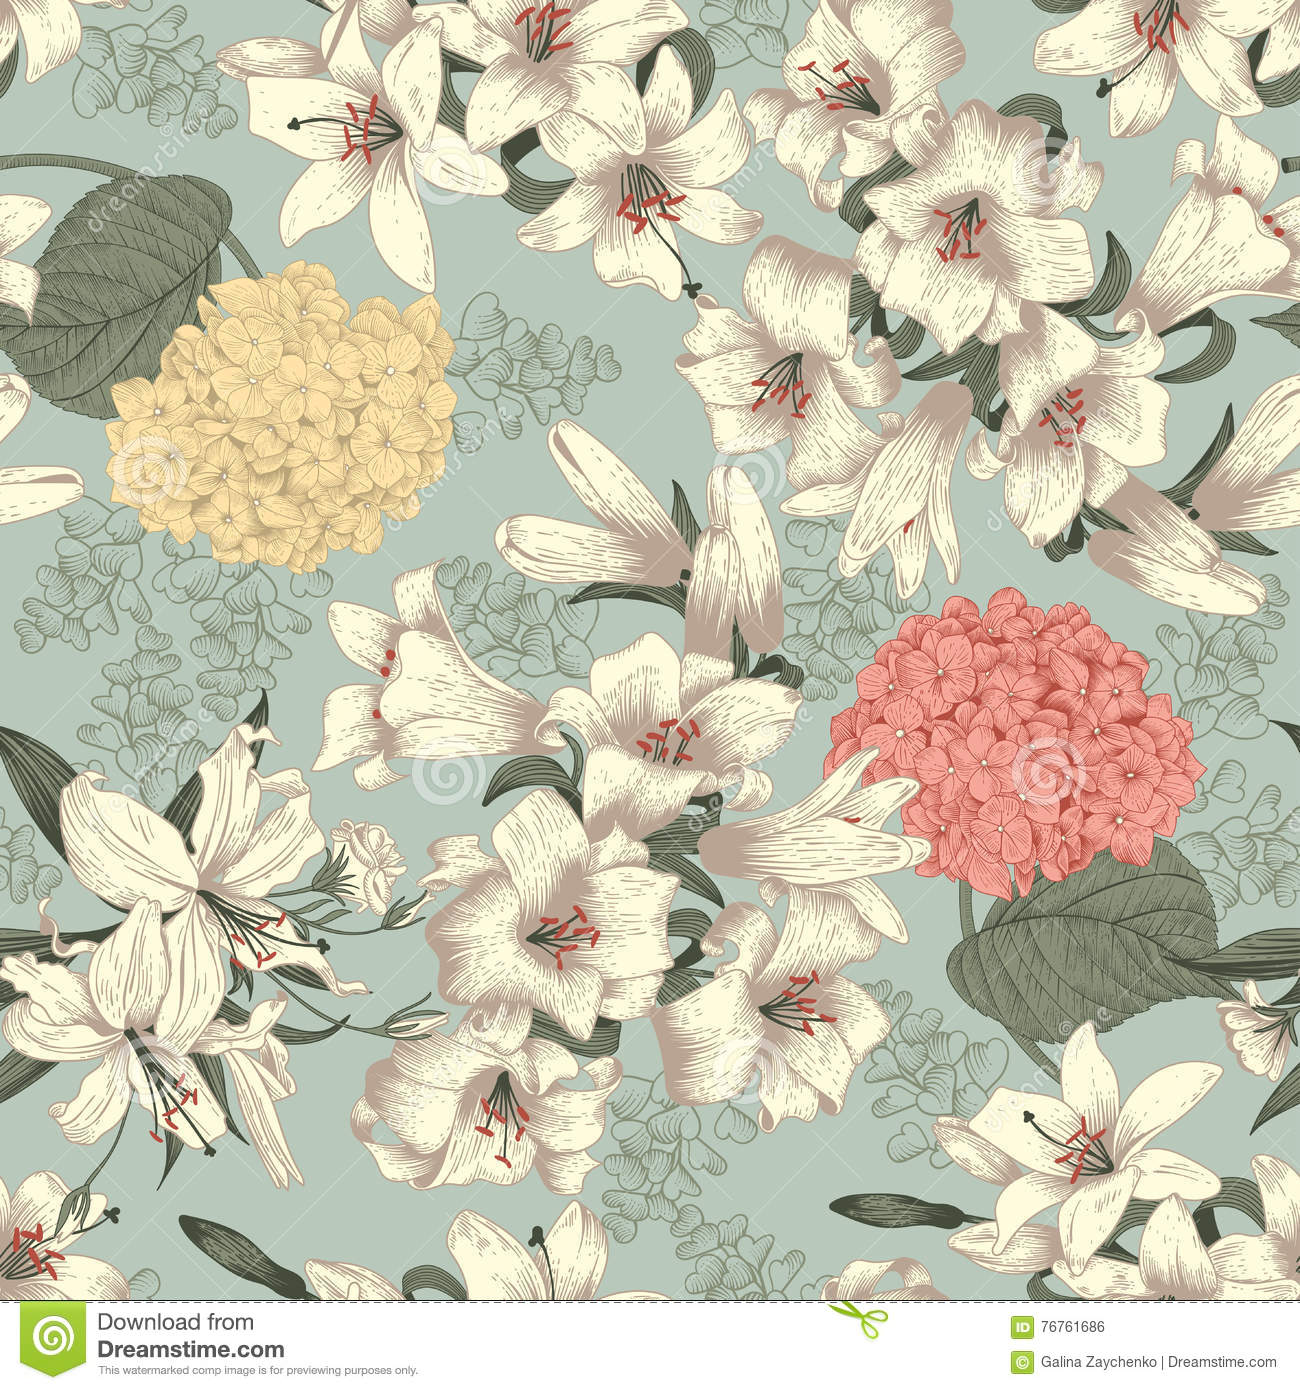 Flowers White Lilies Vector Seamless Background Vintage Floral